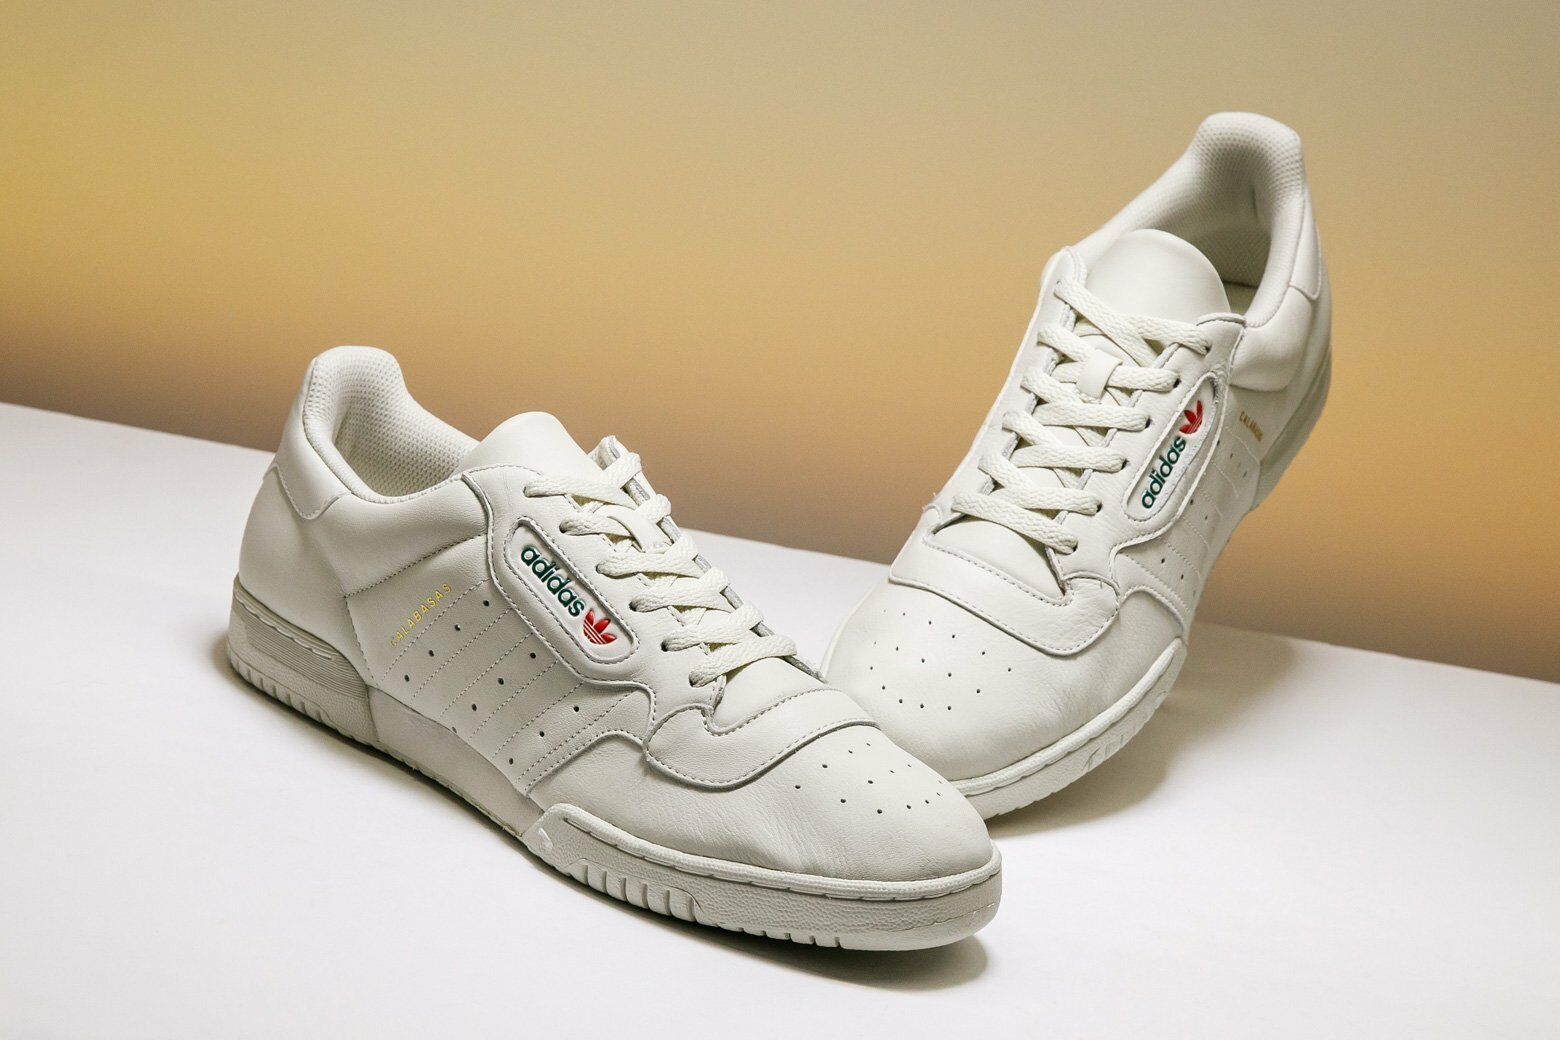 Yeezy powerphase Kanye West Authentique taille us/9.5 10 us/9.5 taille uk 2a00ed